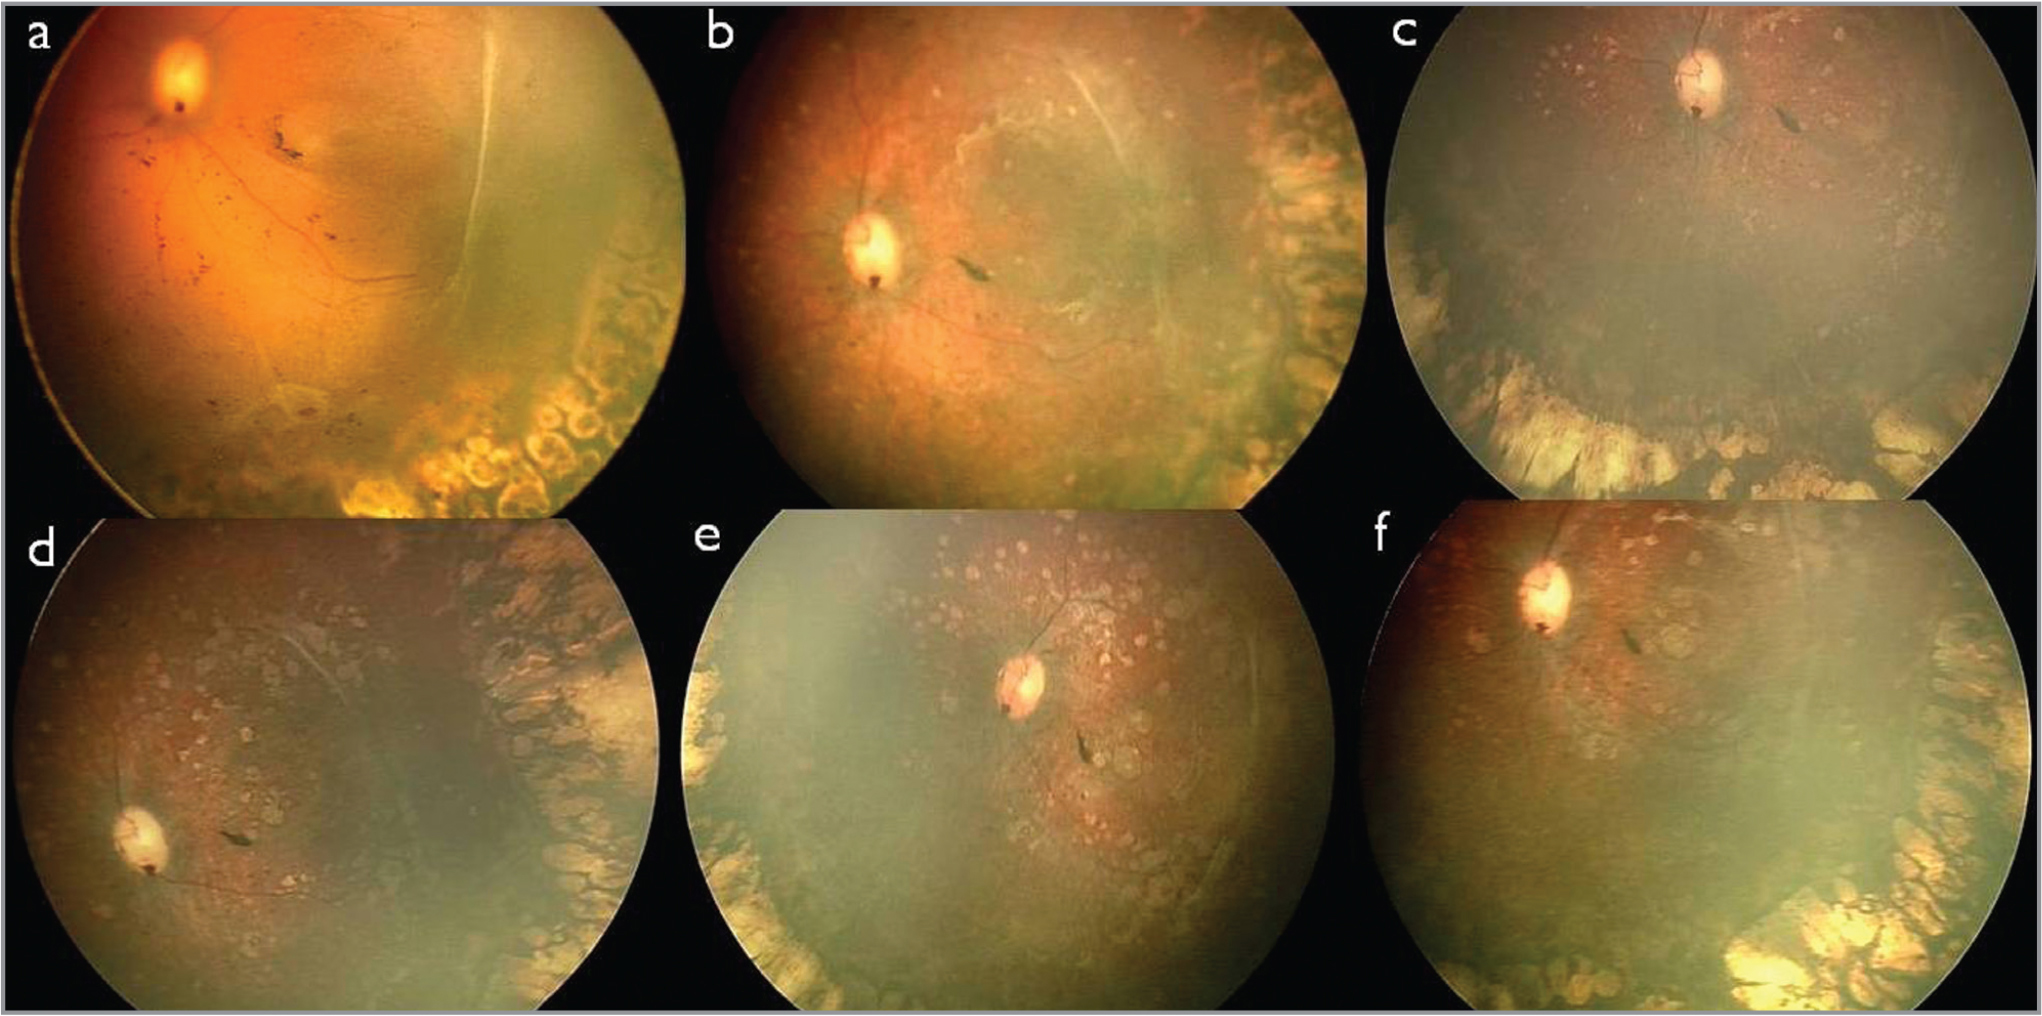 Montaged fundus images of the left eye showing sequential changes in the left eye post-vitrectomy. (a) A detached posterior pole with a retinal break in the inferotemporal quadrant; the peripheral lasered retina is attached. (b, c, d, e, f) Spontaneous reattachment of the retina with no apparent hole and multiple depigmented spots at the posterior pole that increased in size and number during follow-up at 2.5, 7, 8, 13, and 18 months post-surgery, respectively.